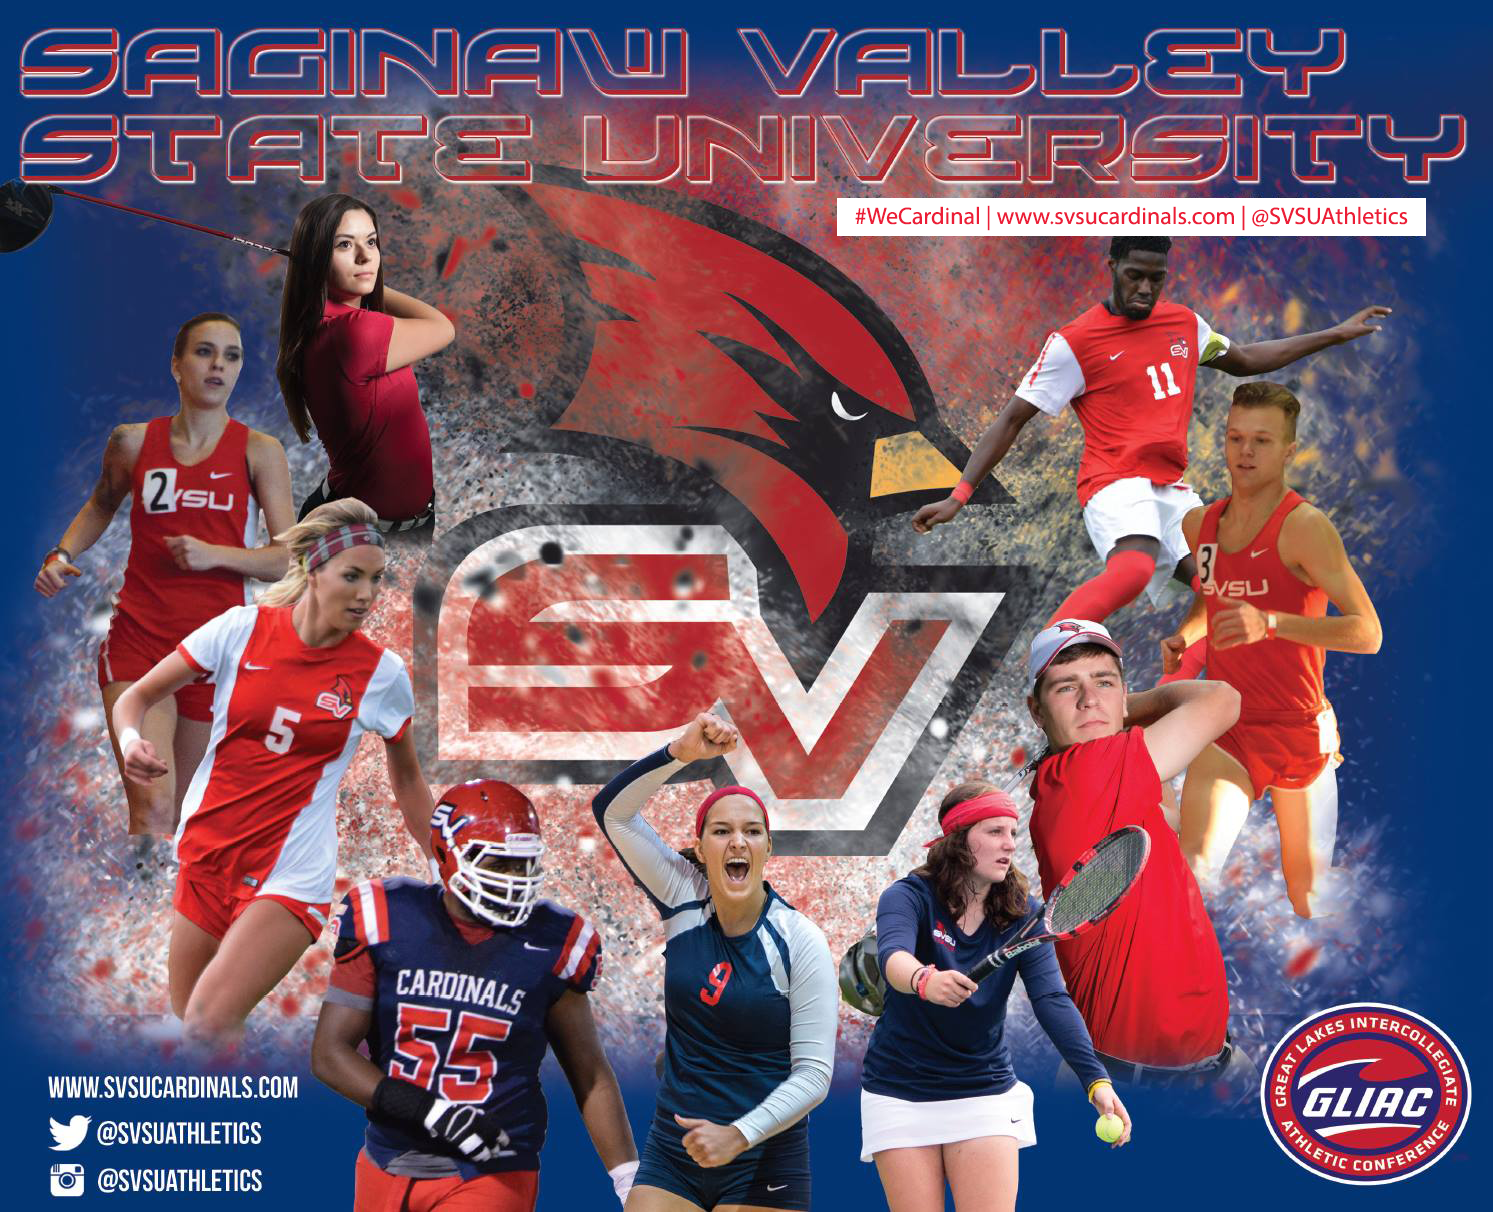 SVSU Athletics Fall 2016 collage